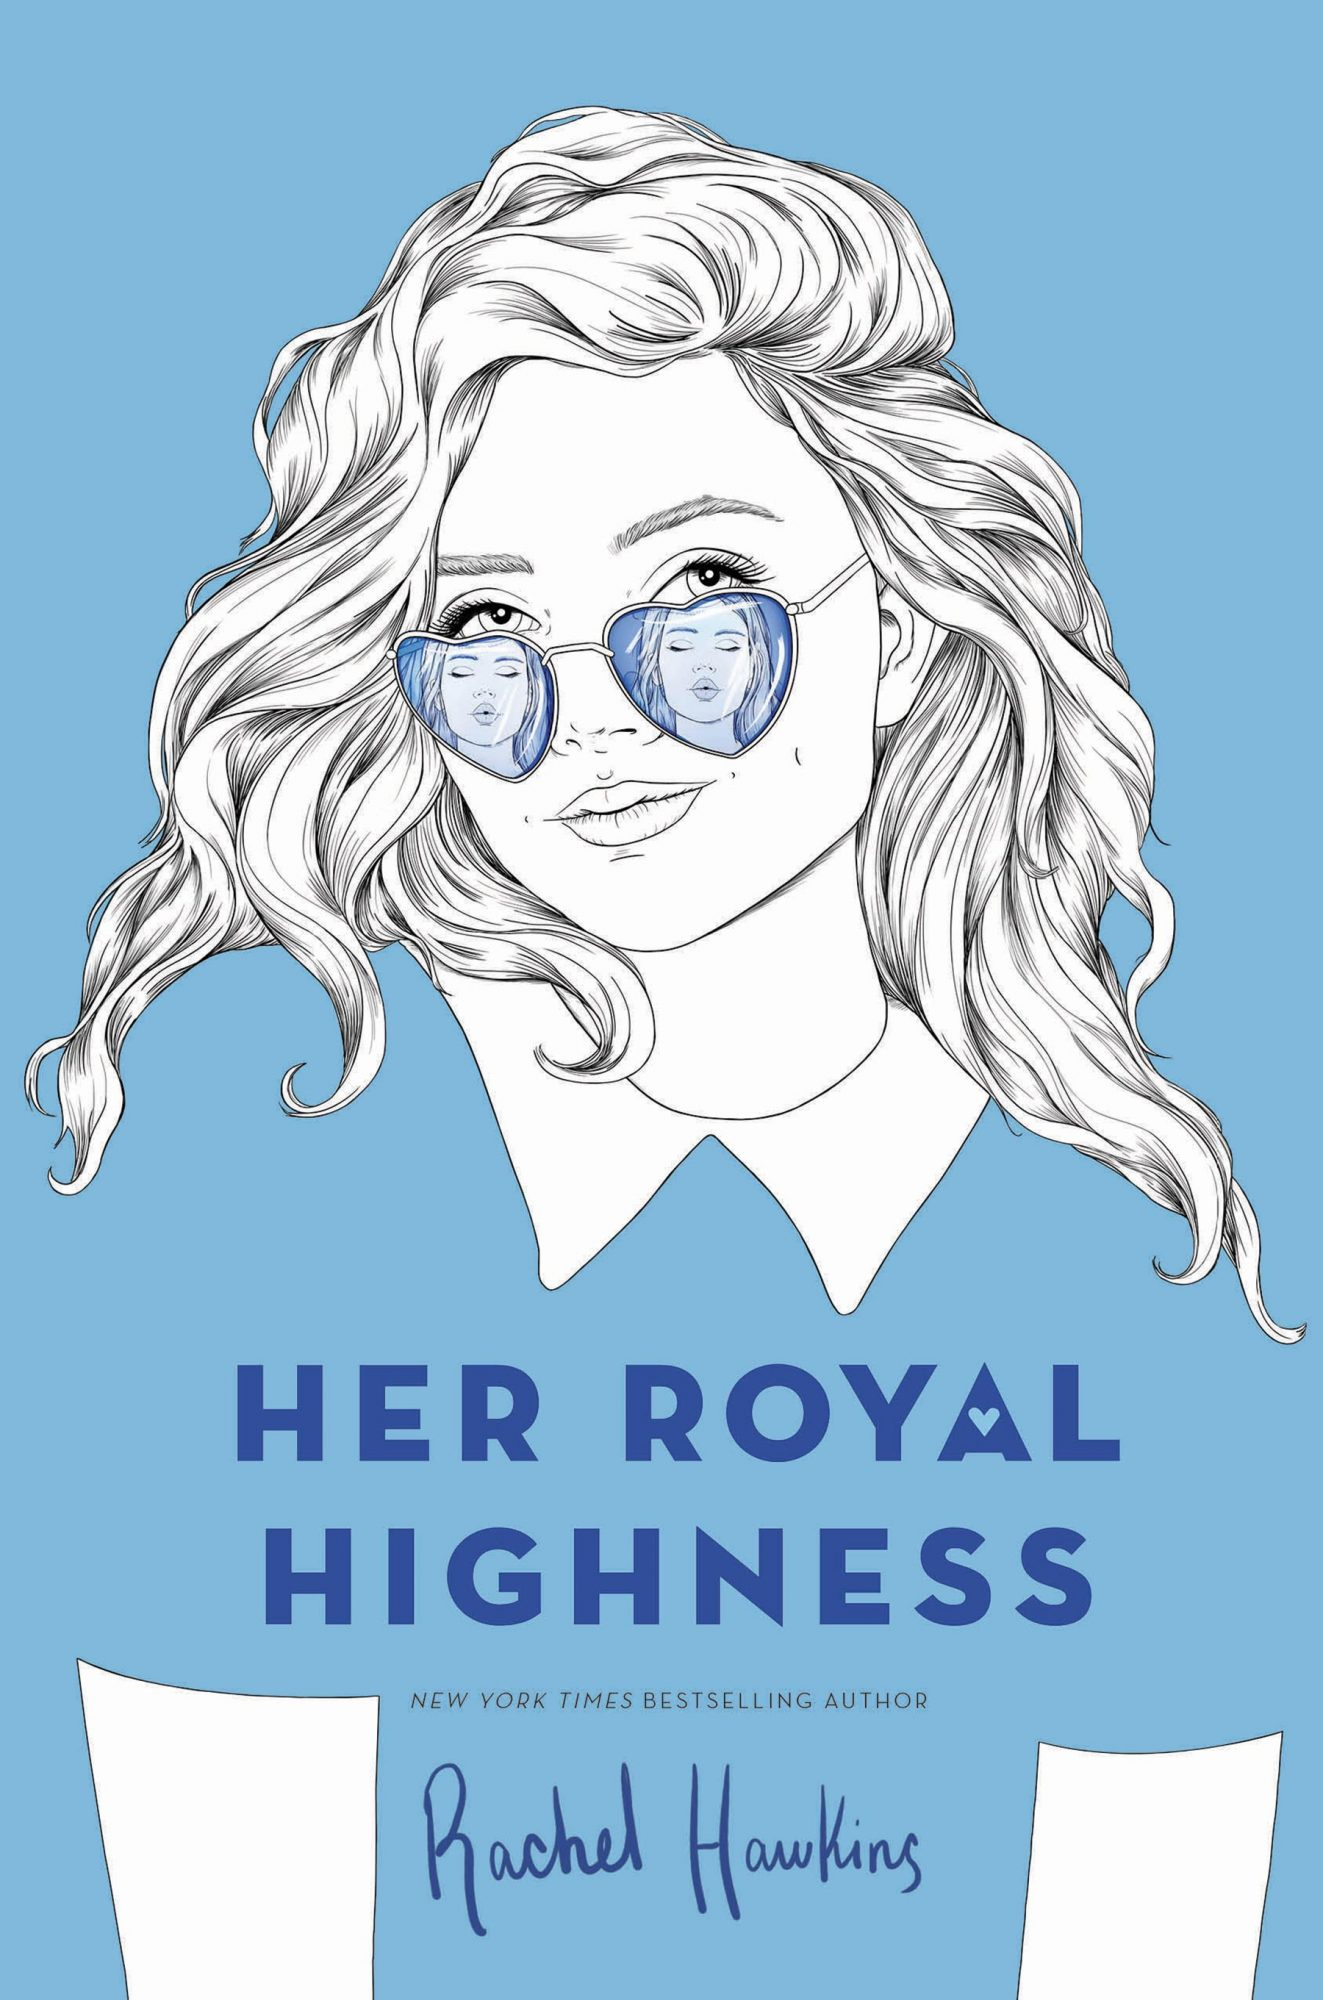 Her Royal Highness by Rachel Hawkins CR: Penguin